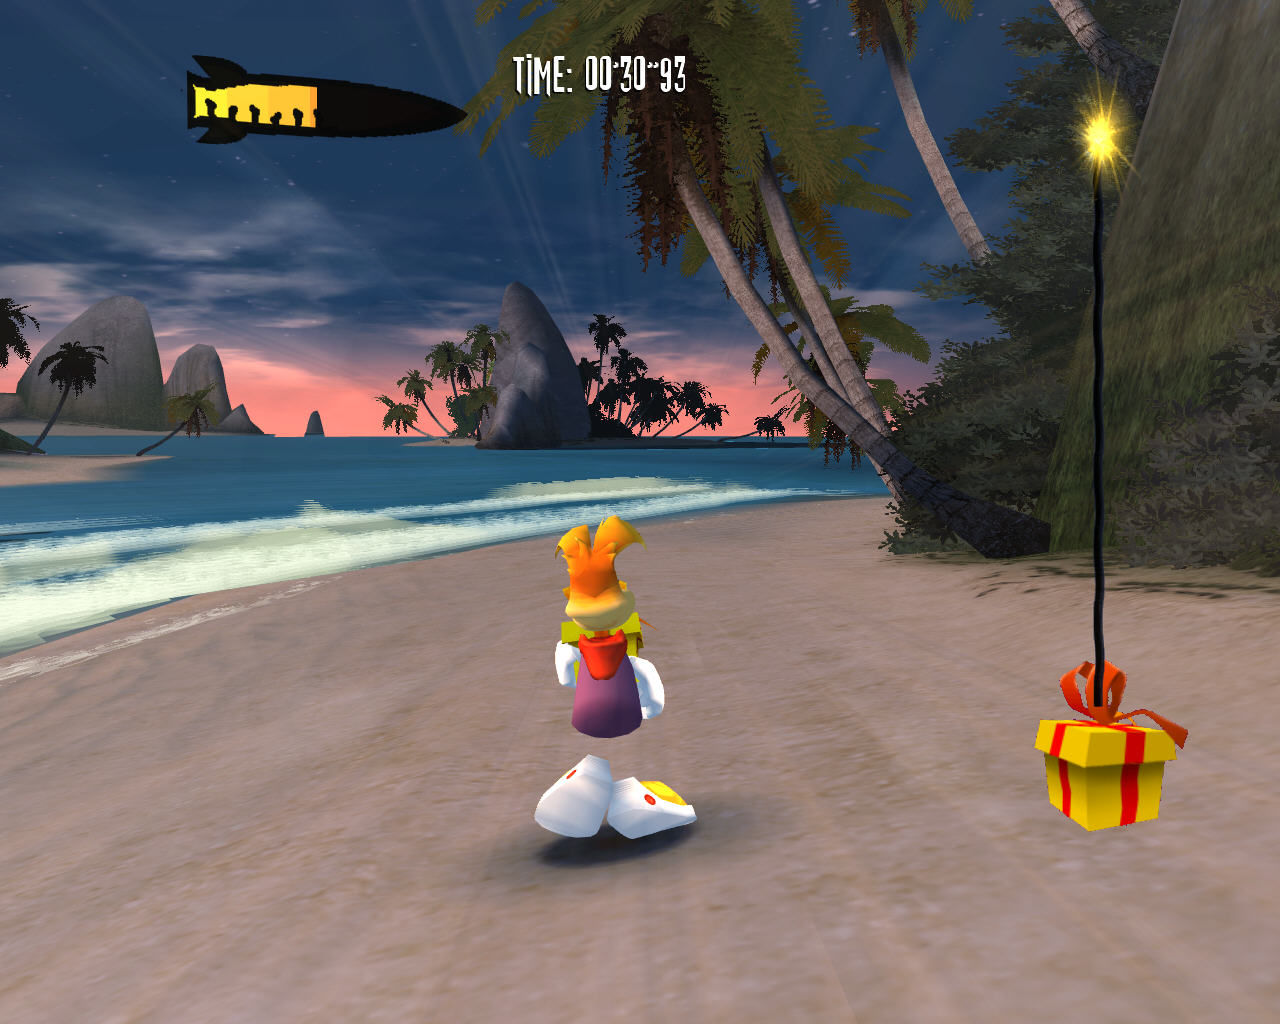 Rayman Raving Rabbids Windows Return that present before it blows up.